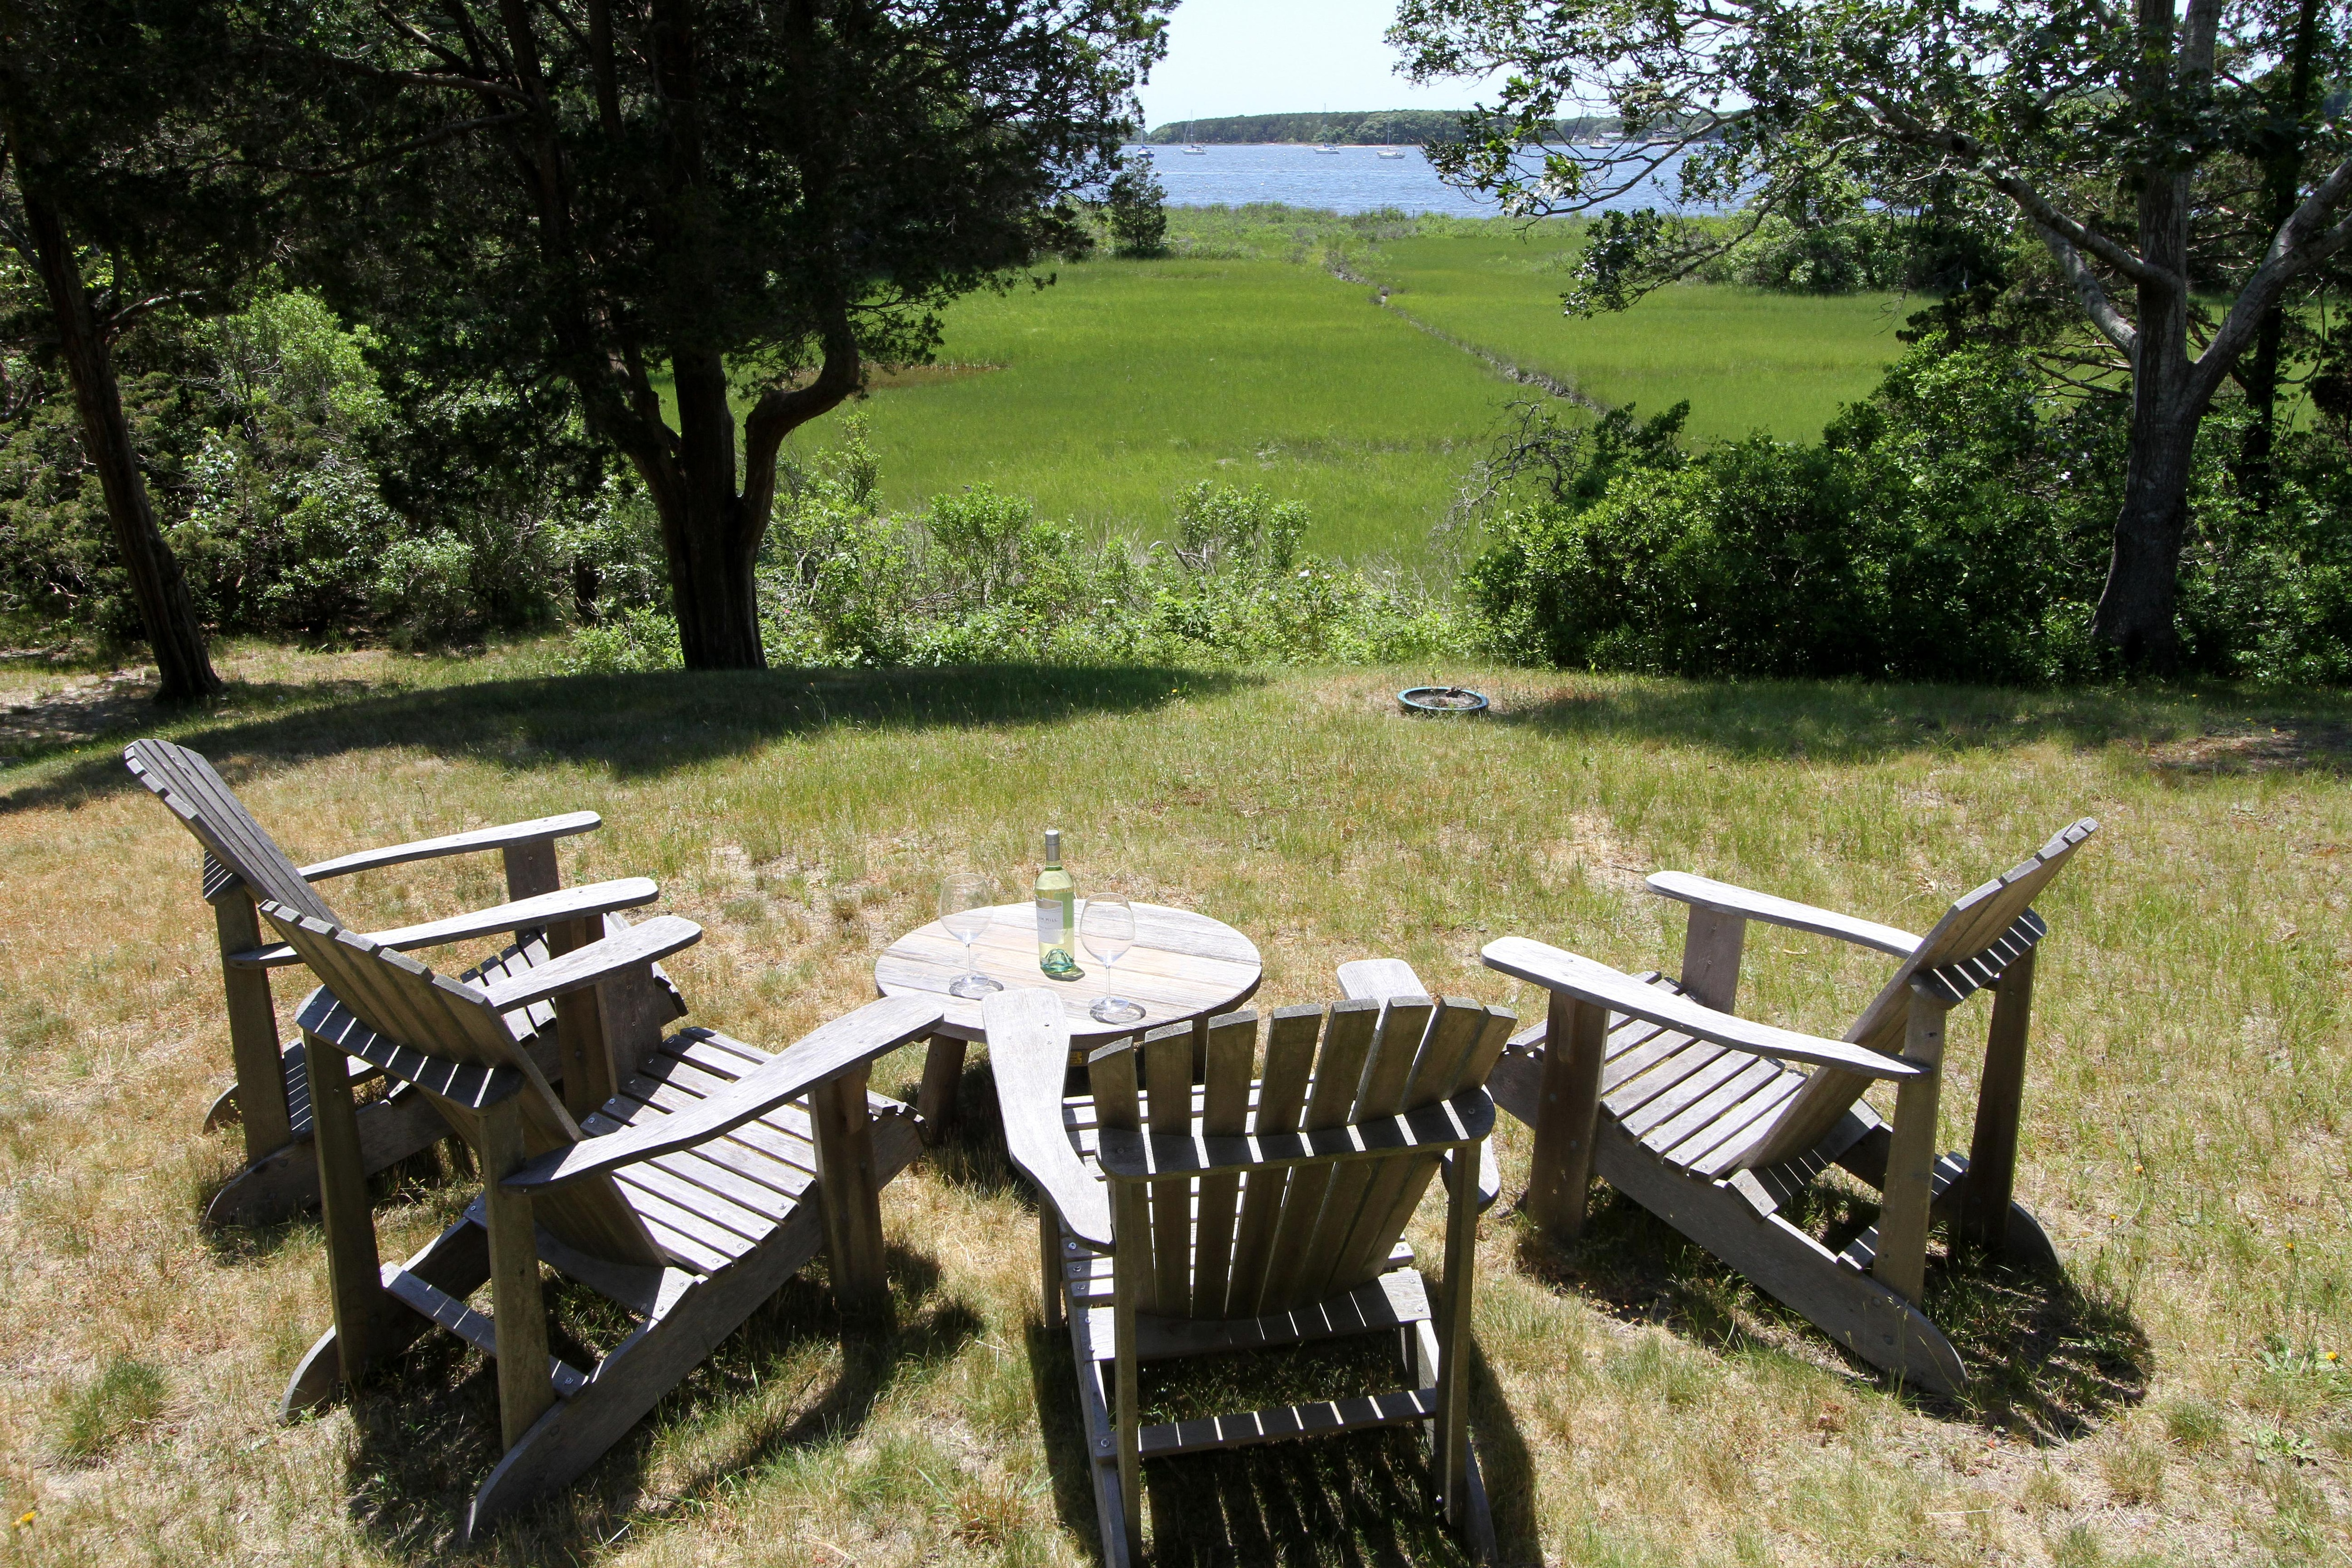 Lounge on the Adirondack chairs in the yard as you overlook Waquoit Bay.